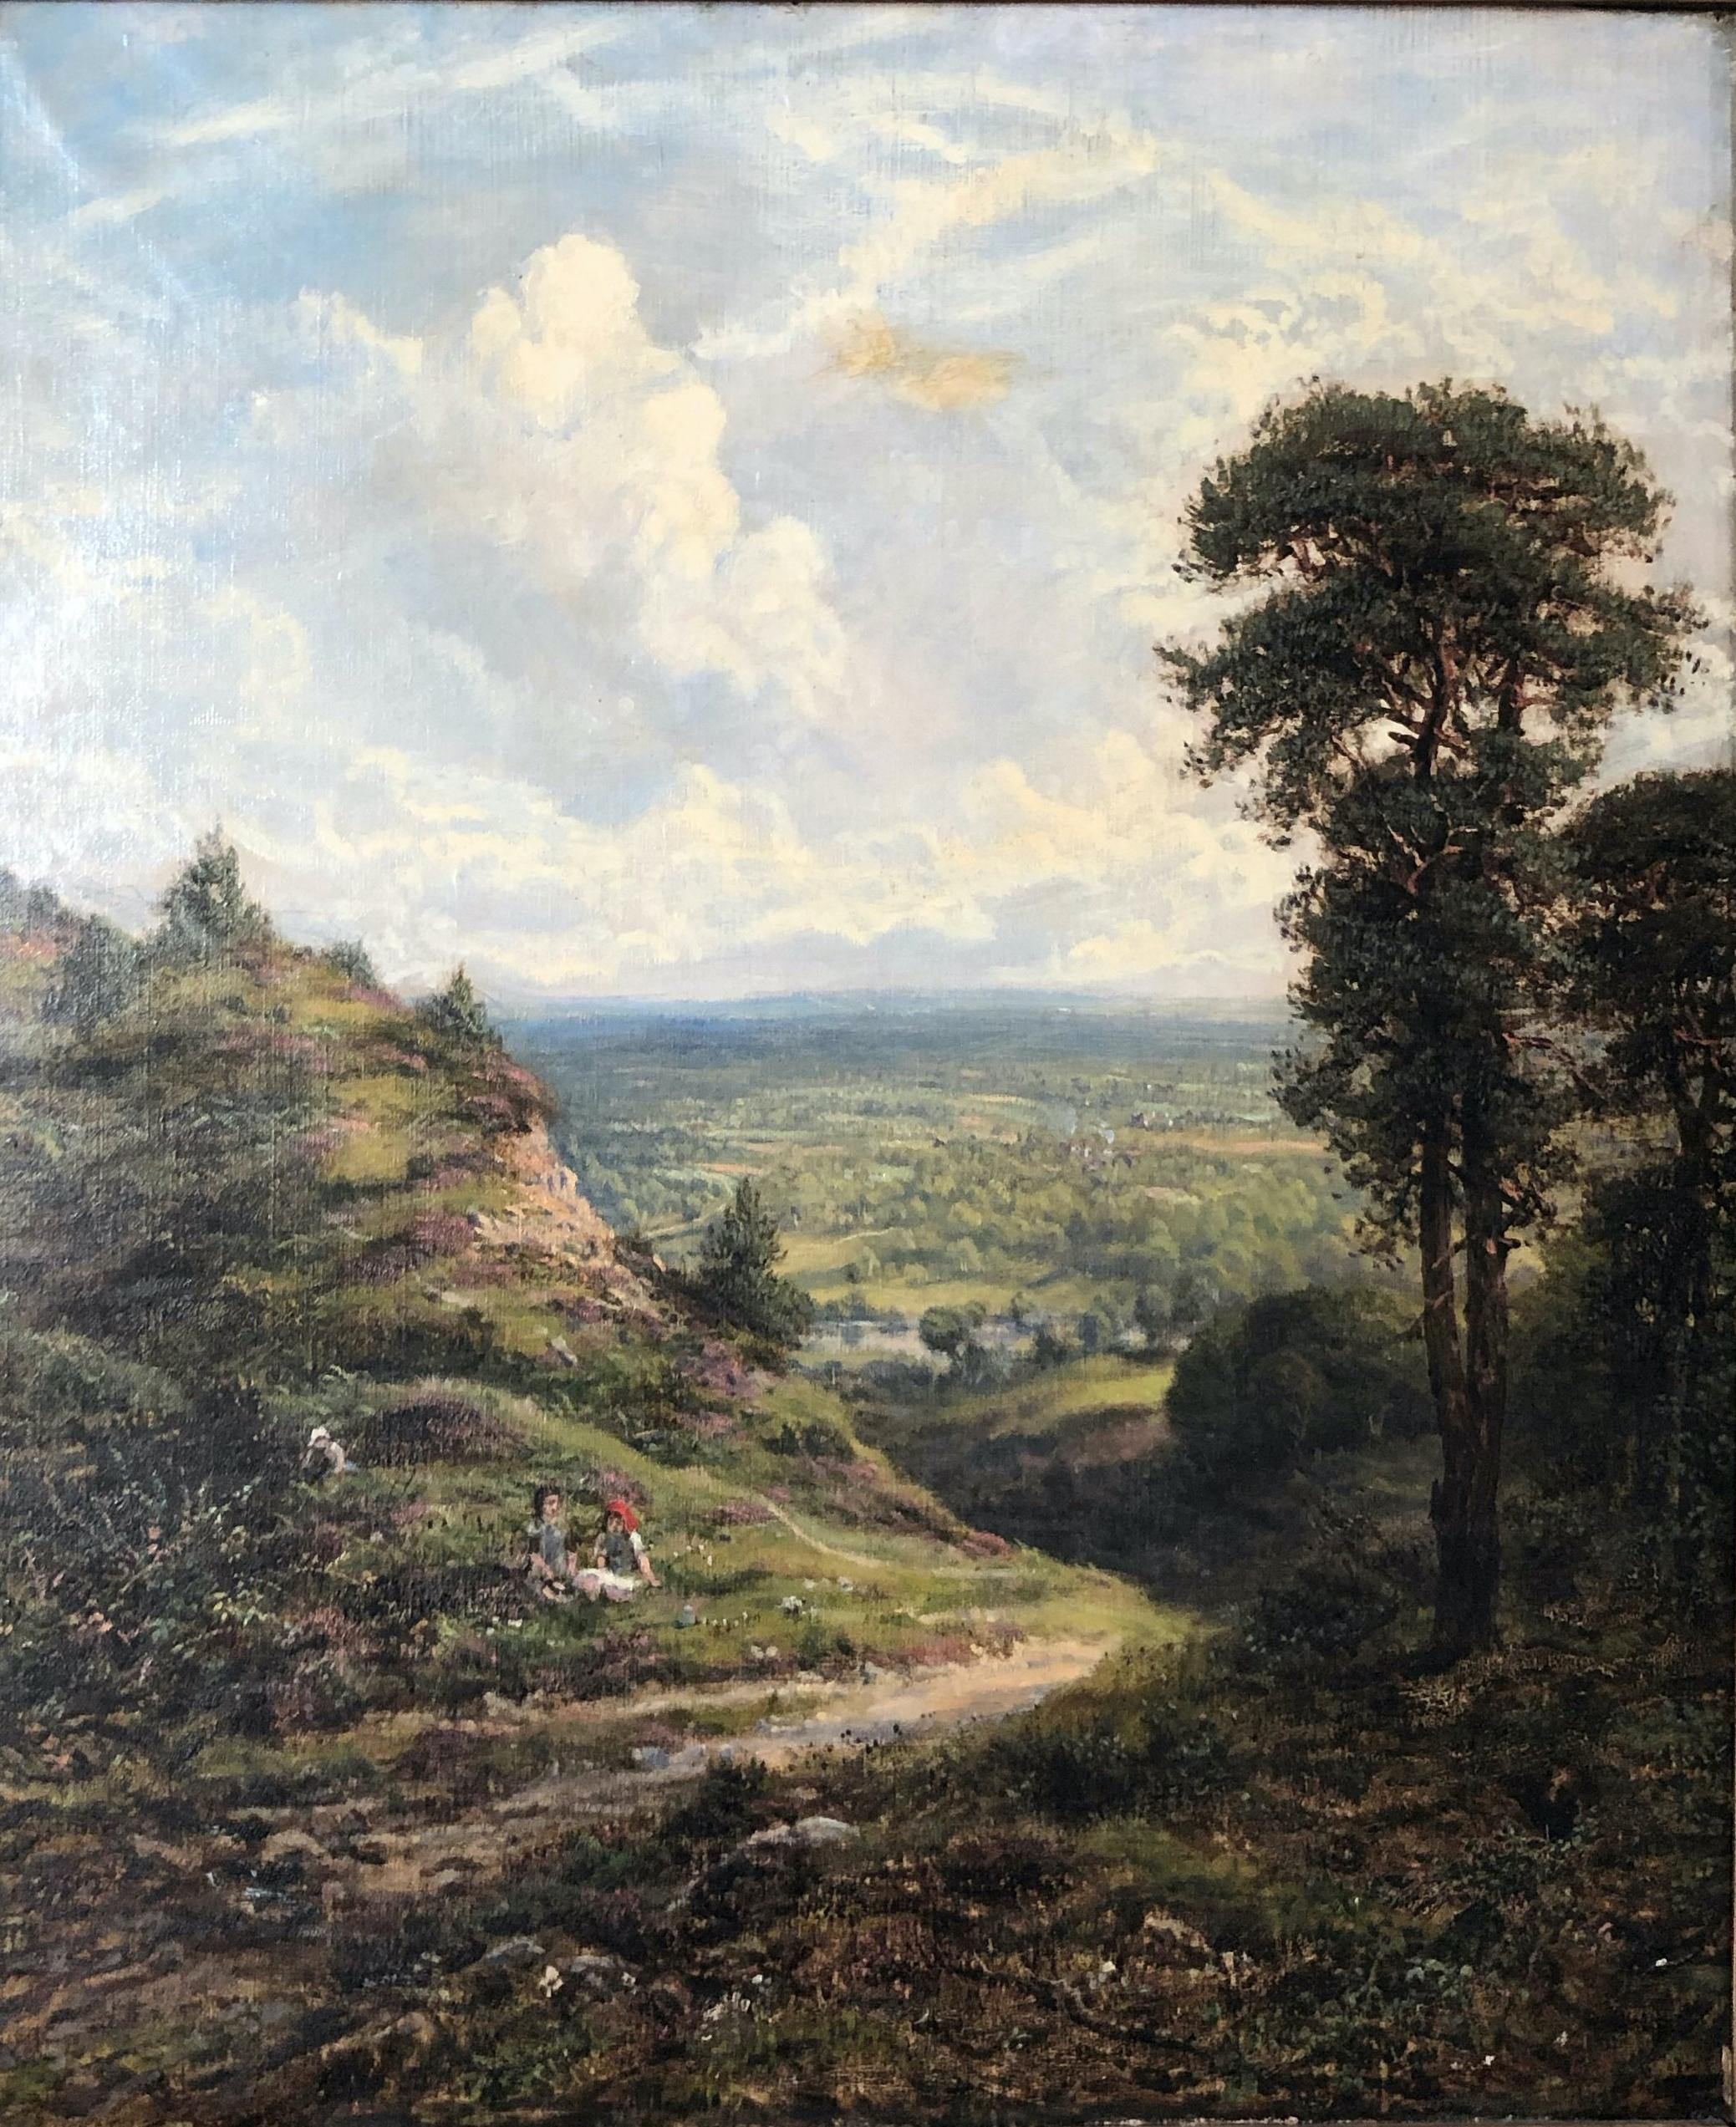 Landscape - Oil on Canvas by G. W. Mote - 1888